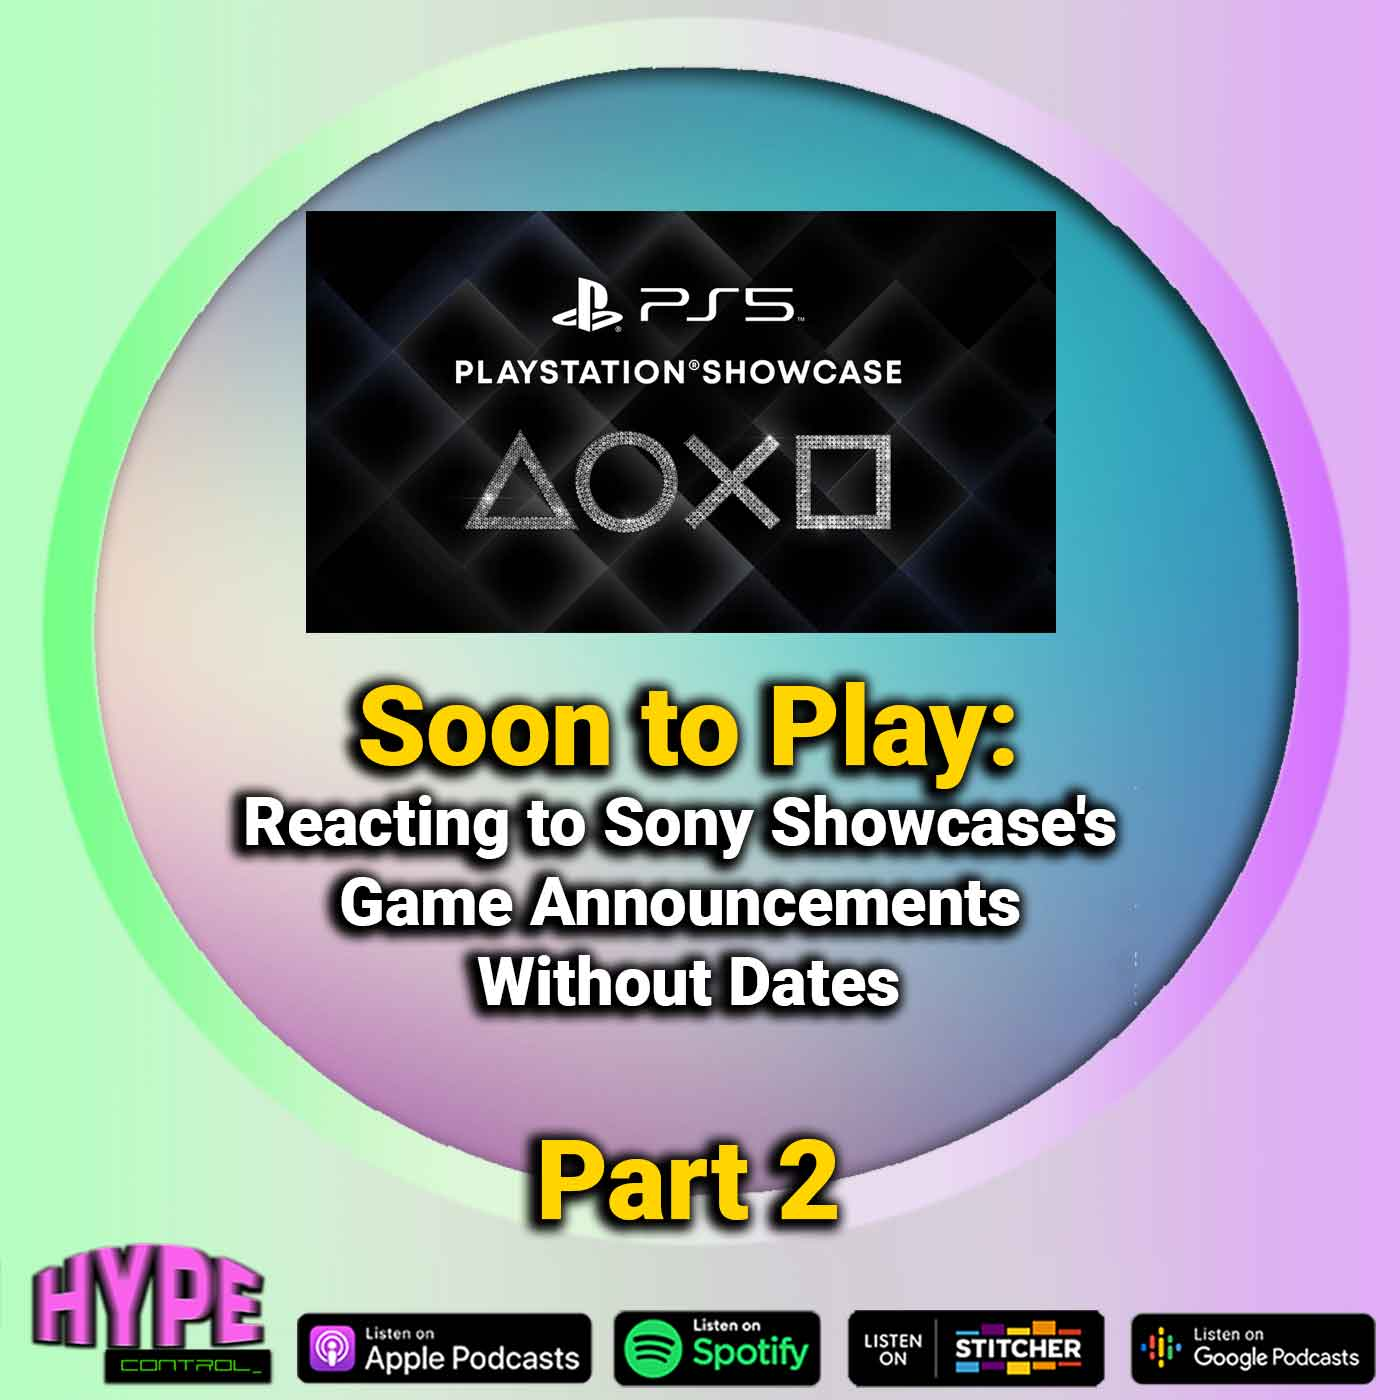 Ep. 32 Part 2 - Soon To Play (Reacting to Sony Showcase's Game Announcements Without Dates)